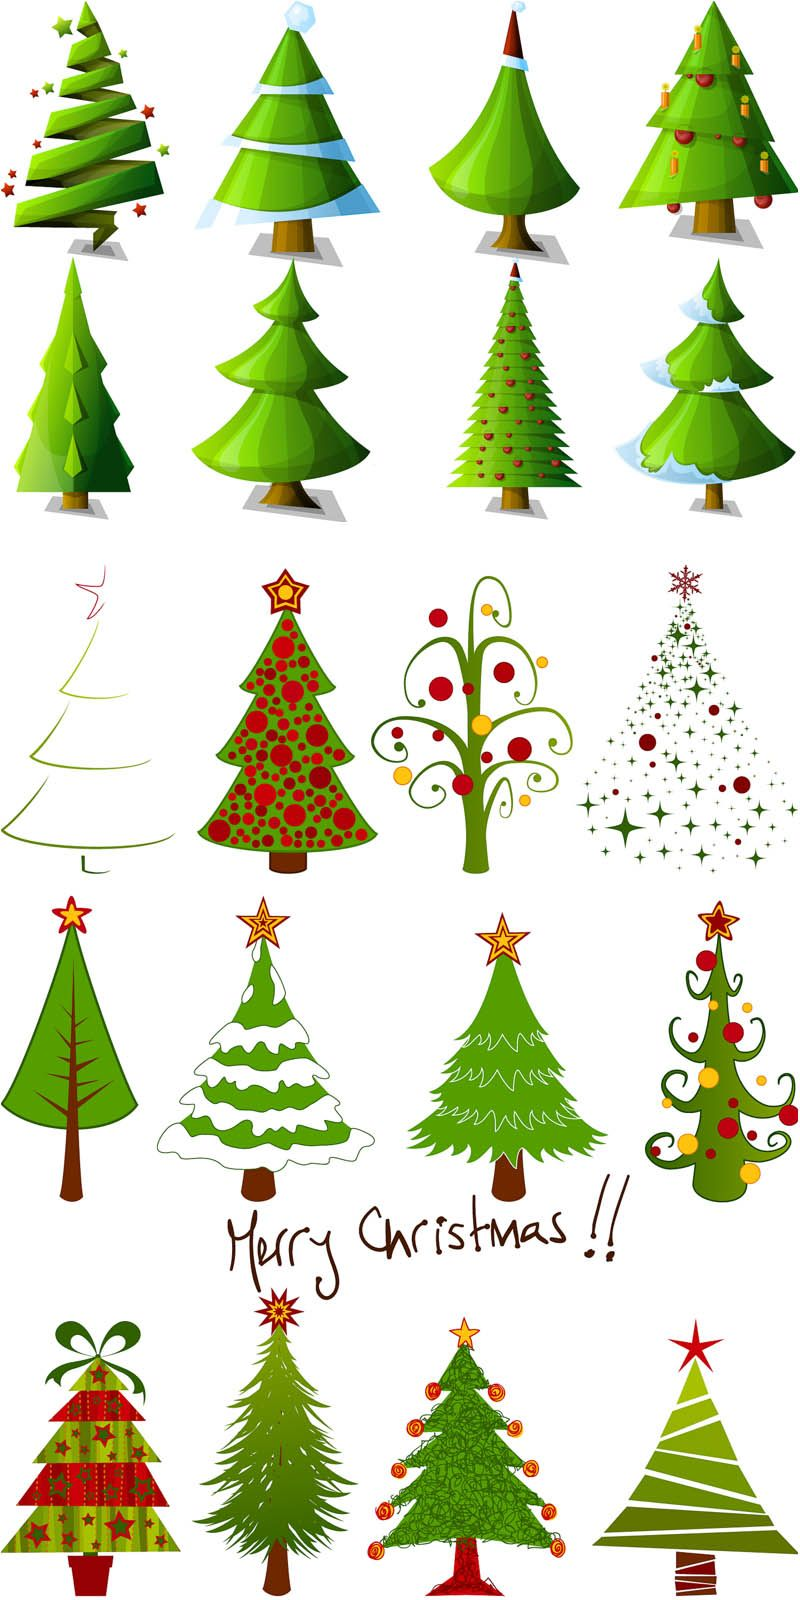 2 Sets of 20 vector cartoon Christmas tree designs in different ...